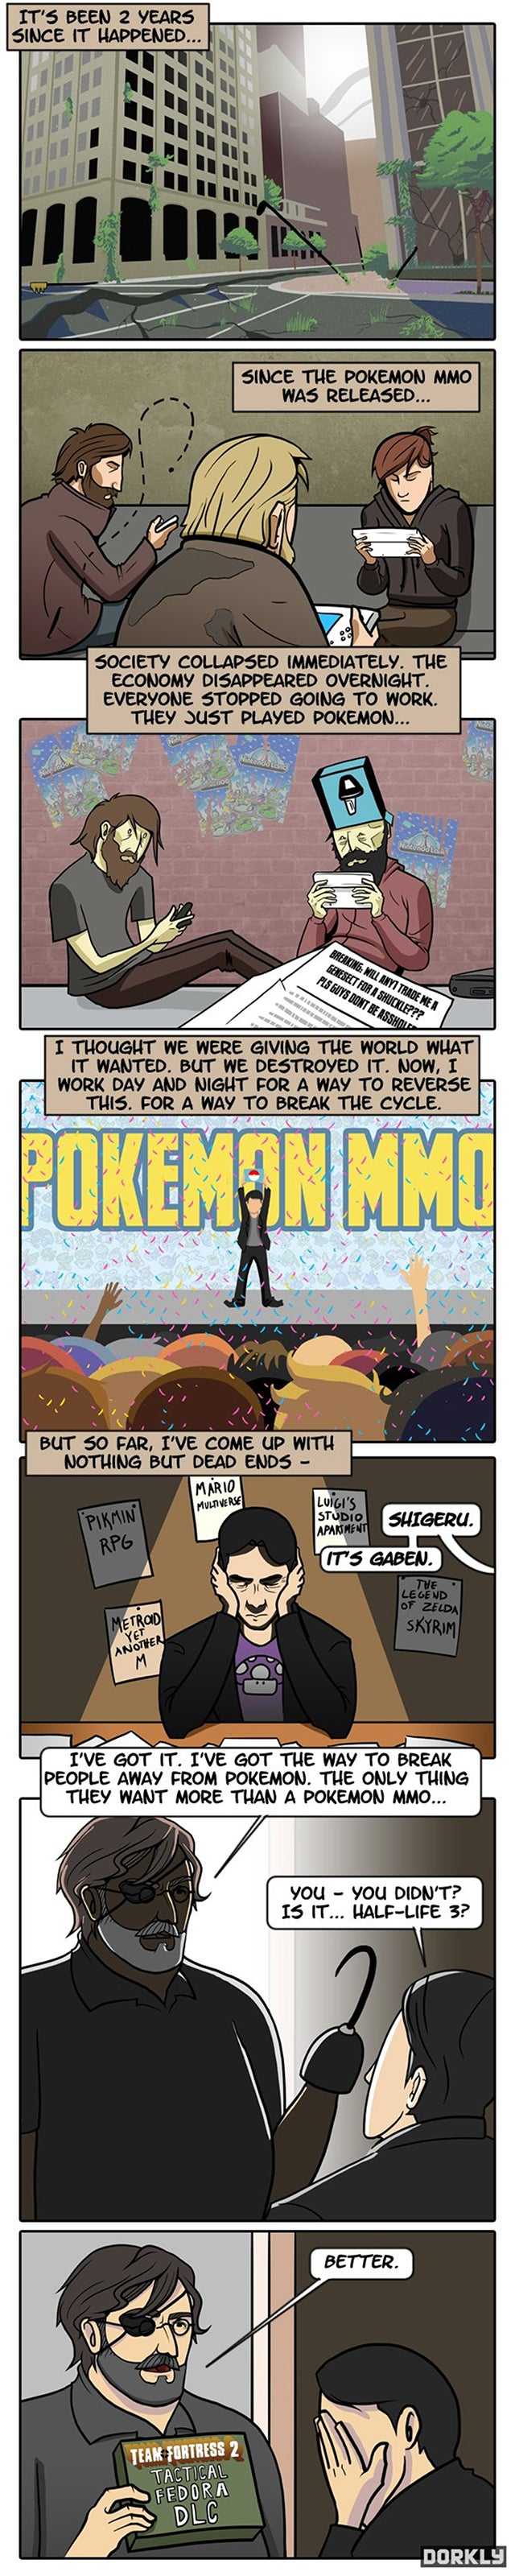 The Real Reason Nintendo Will Never Make A Pokemon MMO